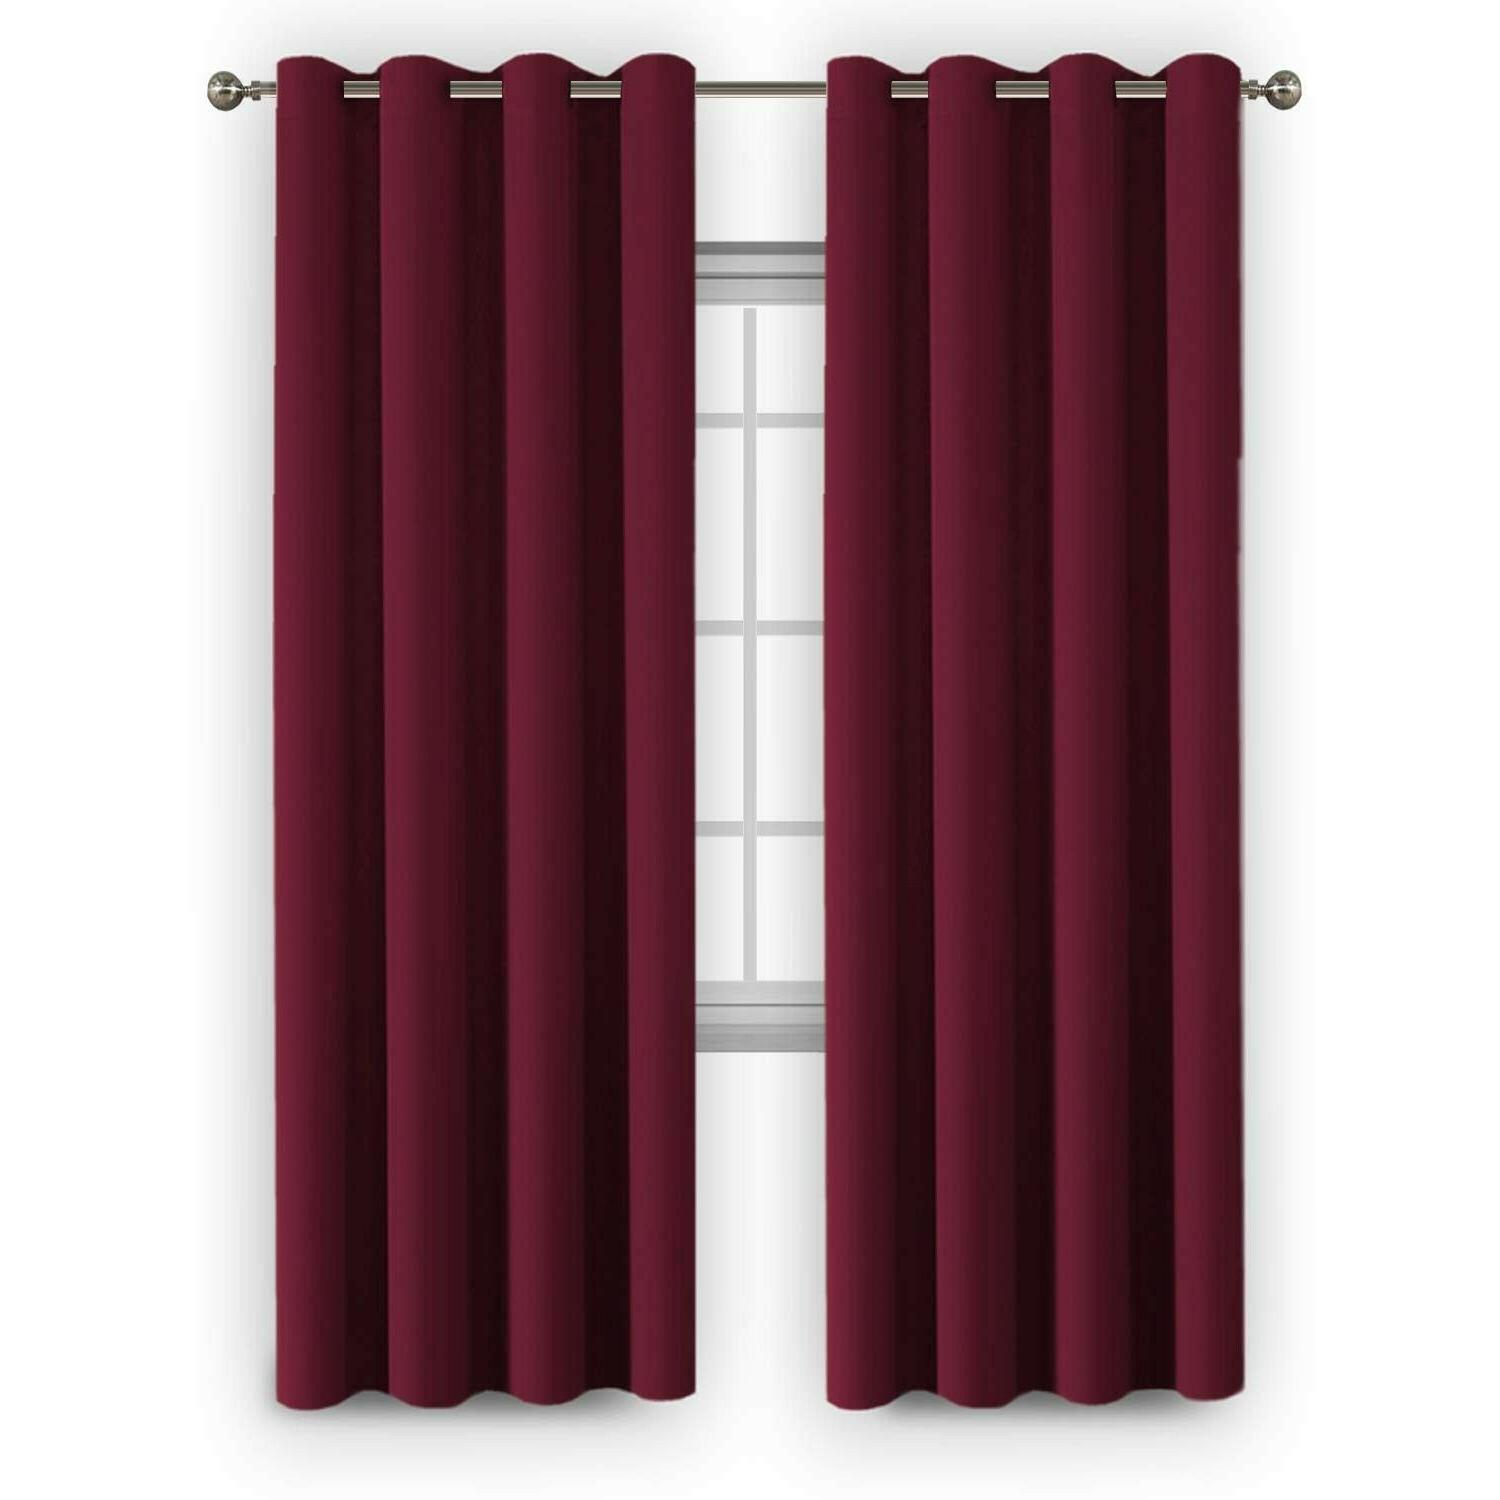 Flamingo P Insulated Blackout Drapes Window x 96